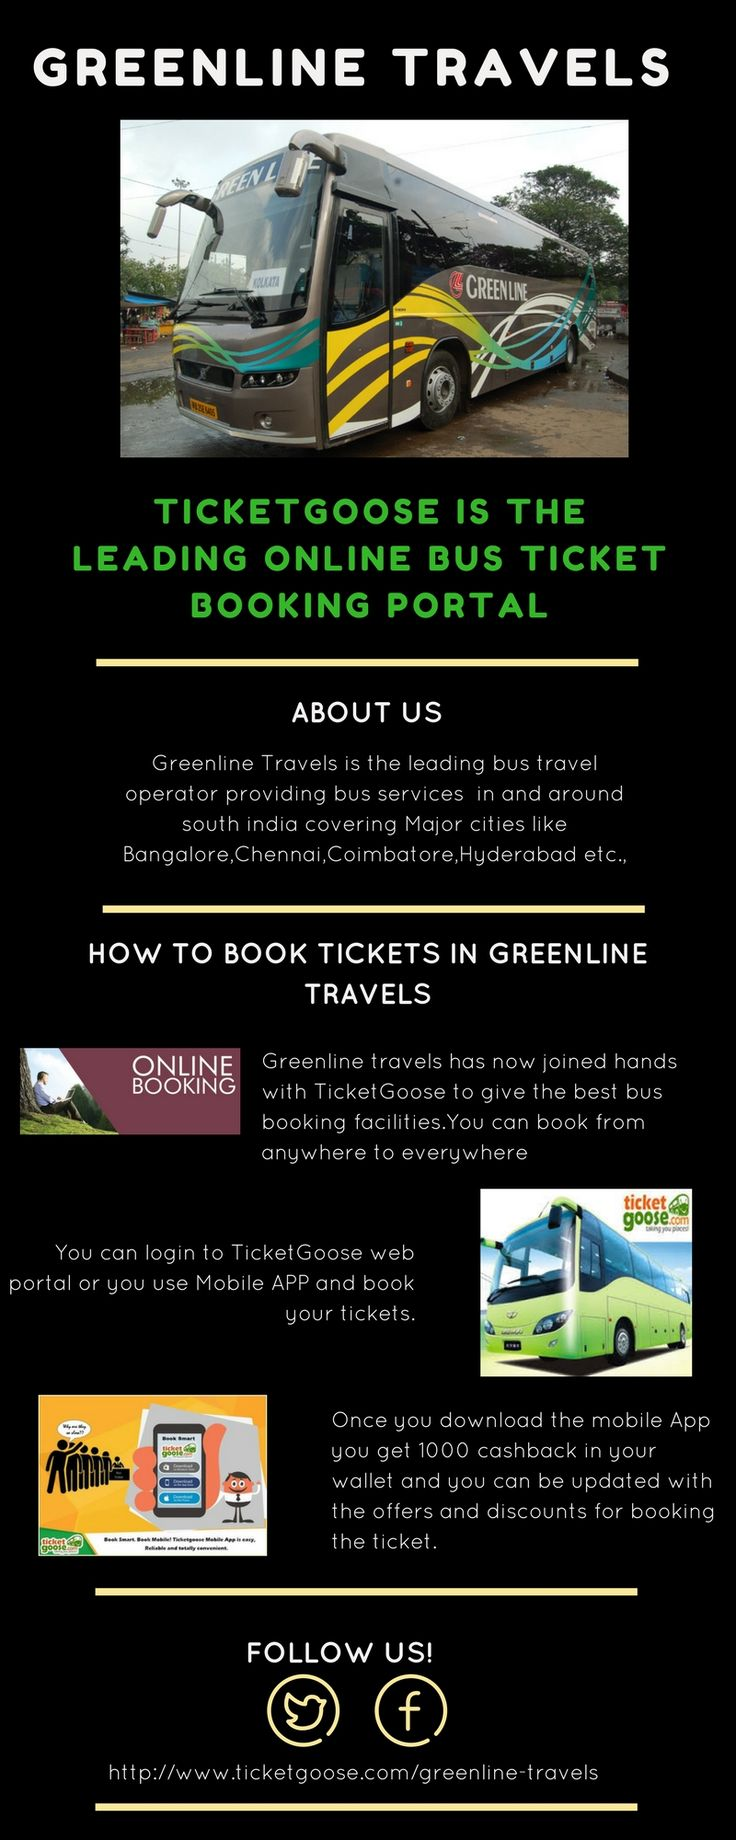 Green line Travels offers the bus services to Vijayawada,Hyderabad,routes.Get the discount on booking the ticket  at ticket goose in green line travels  http://www.ticketgoose.com/greenline-travels